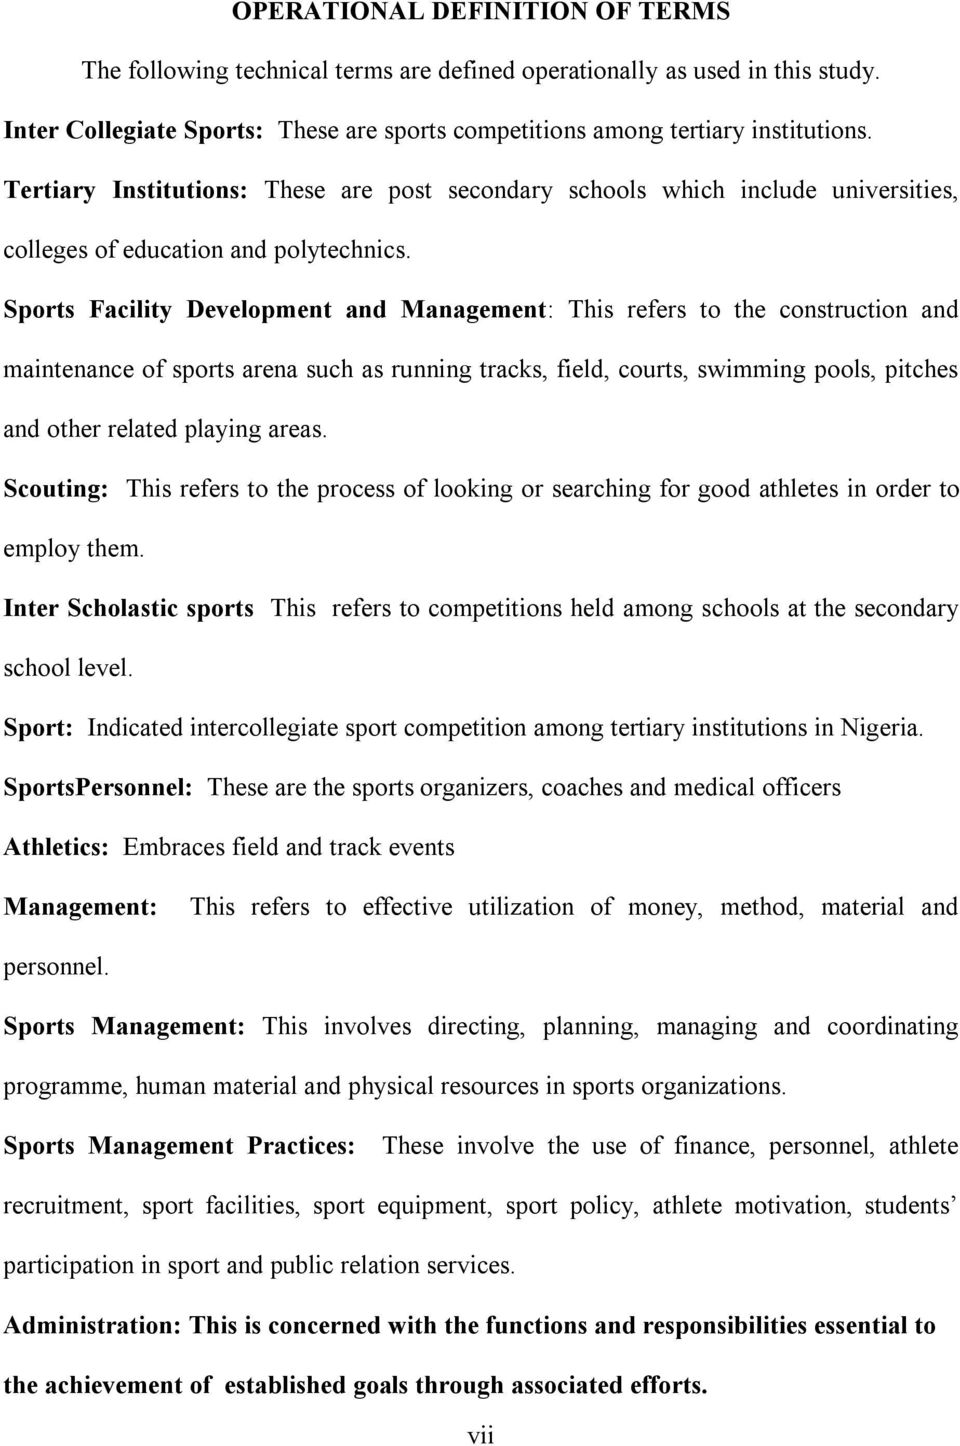 Sports Facility Development and Management: This refers to the construction and maintenance of sports arena such as running tracks, field, courts, swimming pools, pitches and other related playing